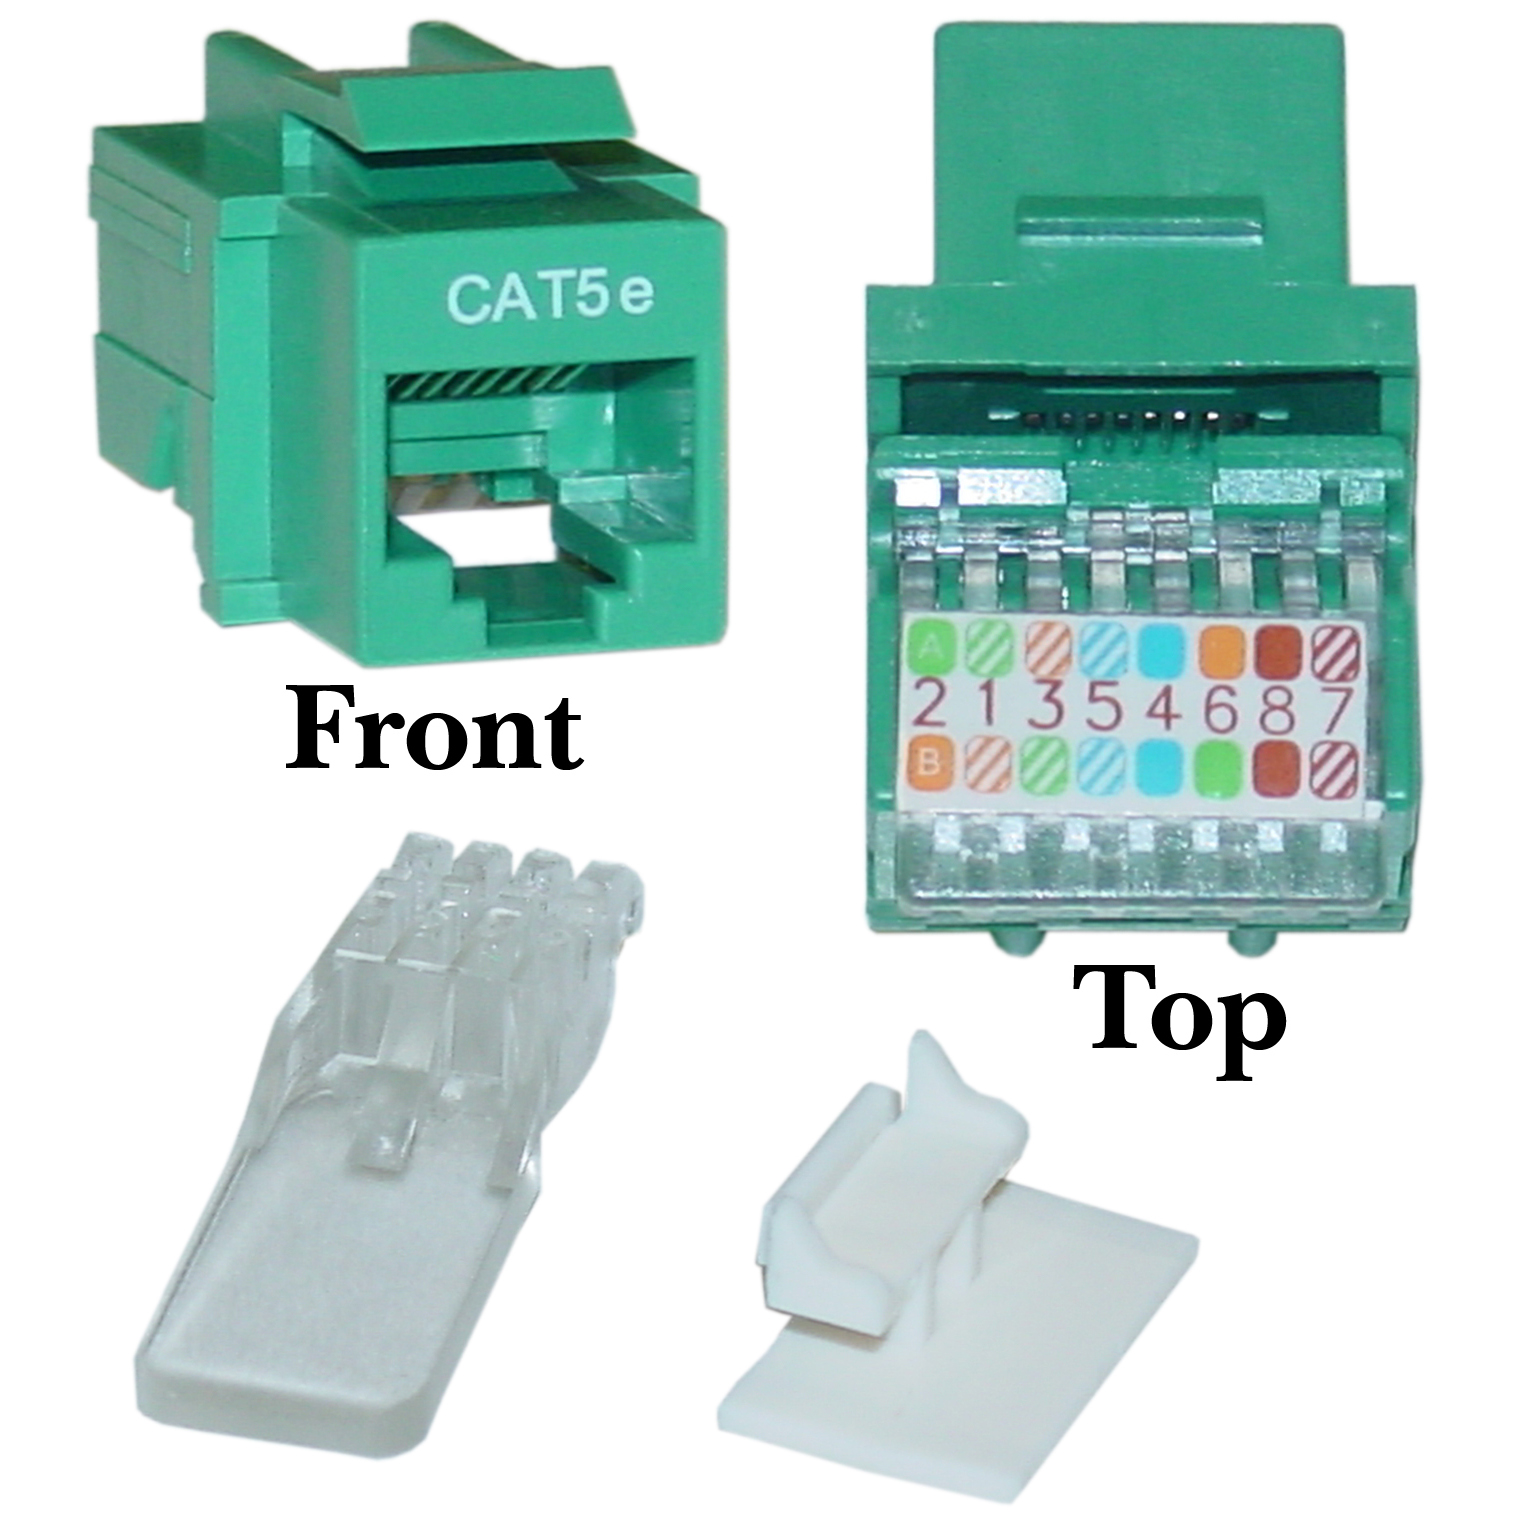 Keystone Cat5e Wiring Diagram Data Cat 5e Wire Diagrams